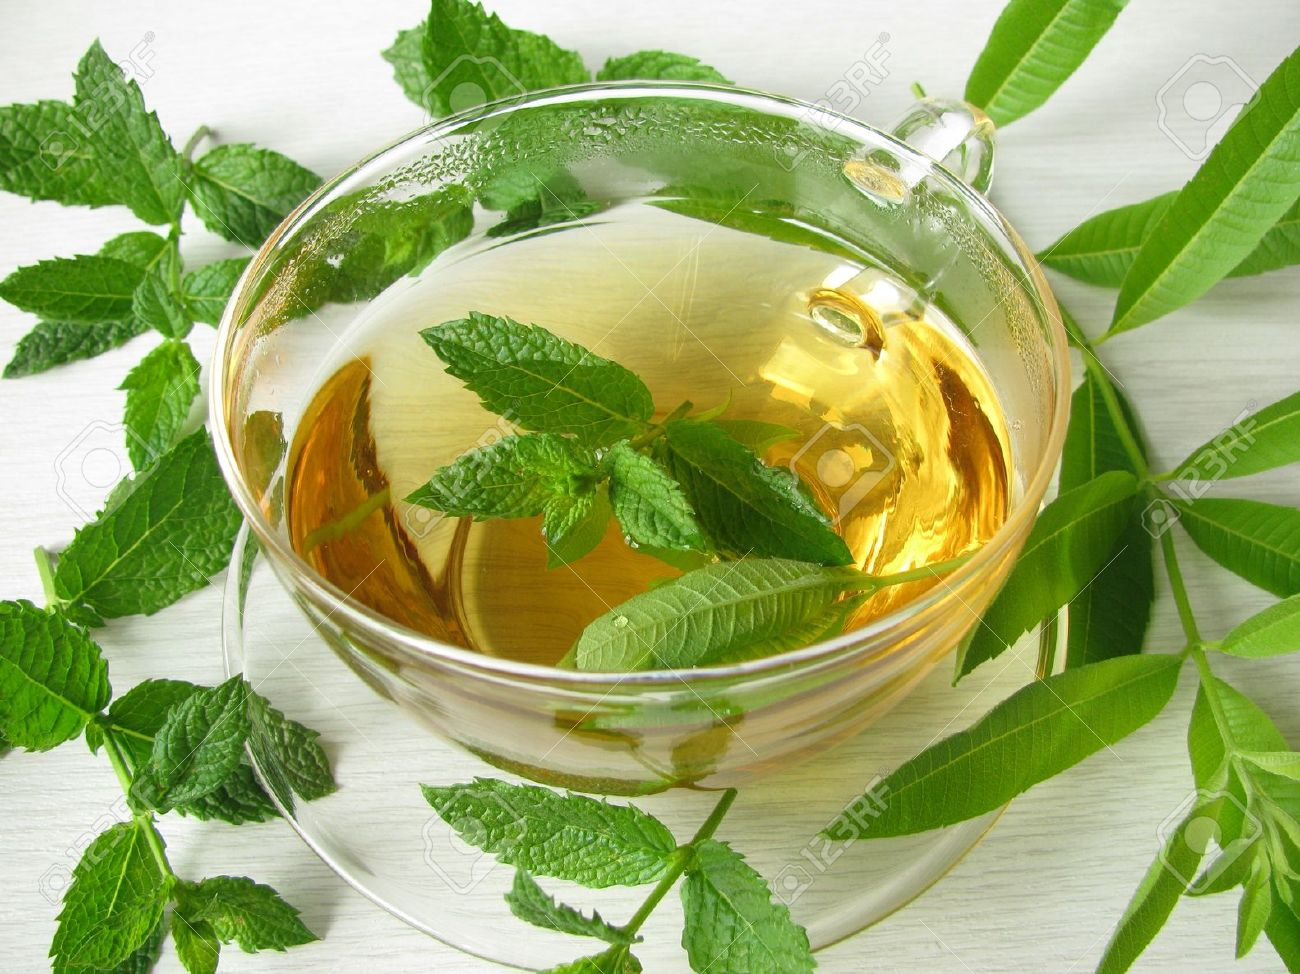 Peppermint And Ginger Are Wonderful Healing Herbs For Self-Care ...